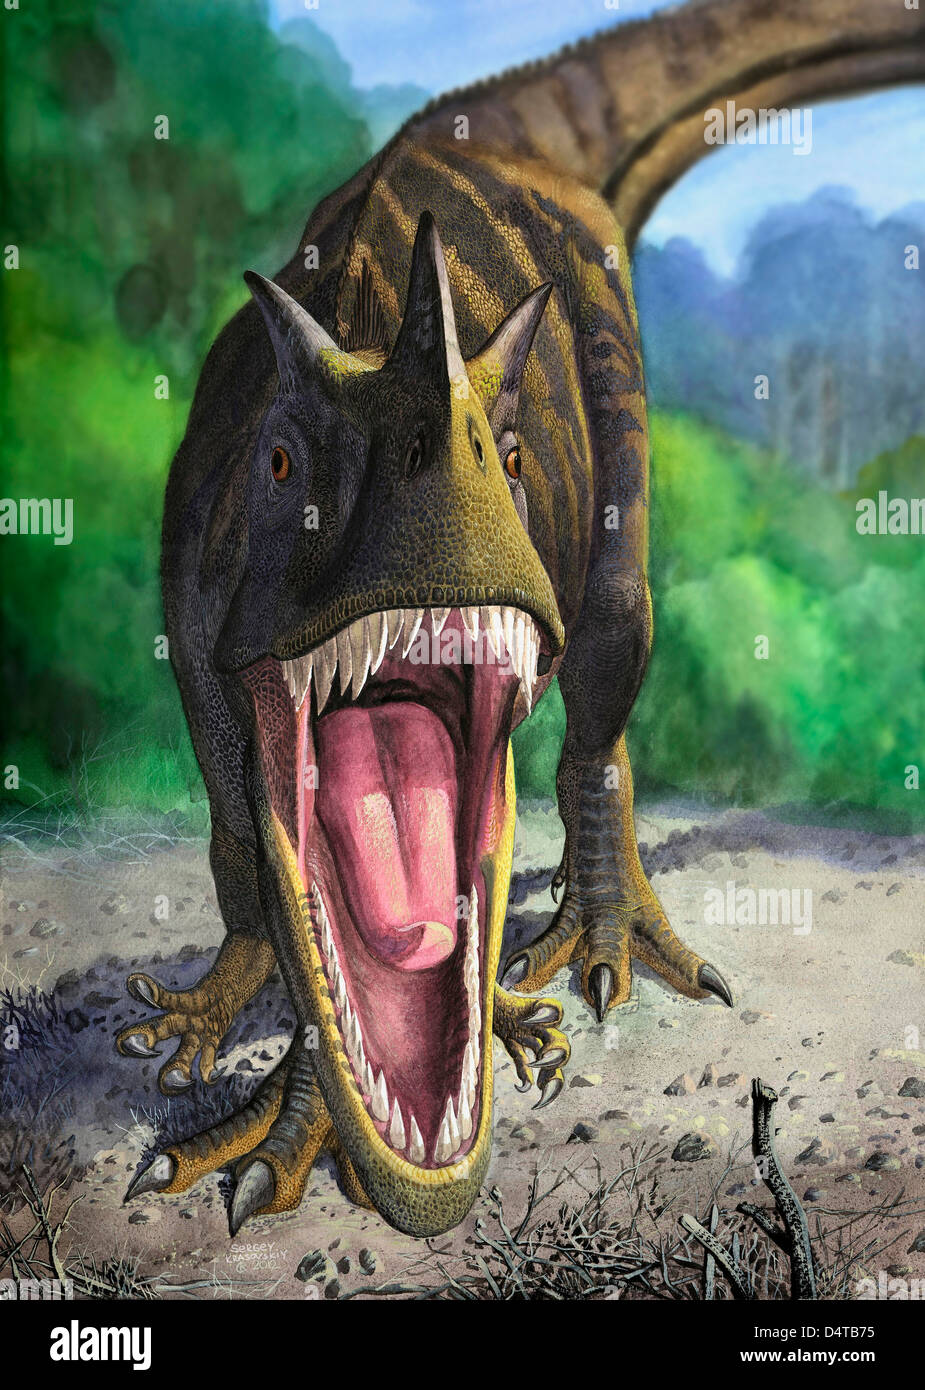 An angry Ceratosaurus dentisulcatus dinosaur shows its fierce teeth. - Stock Image